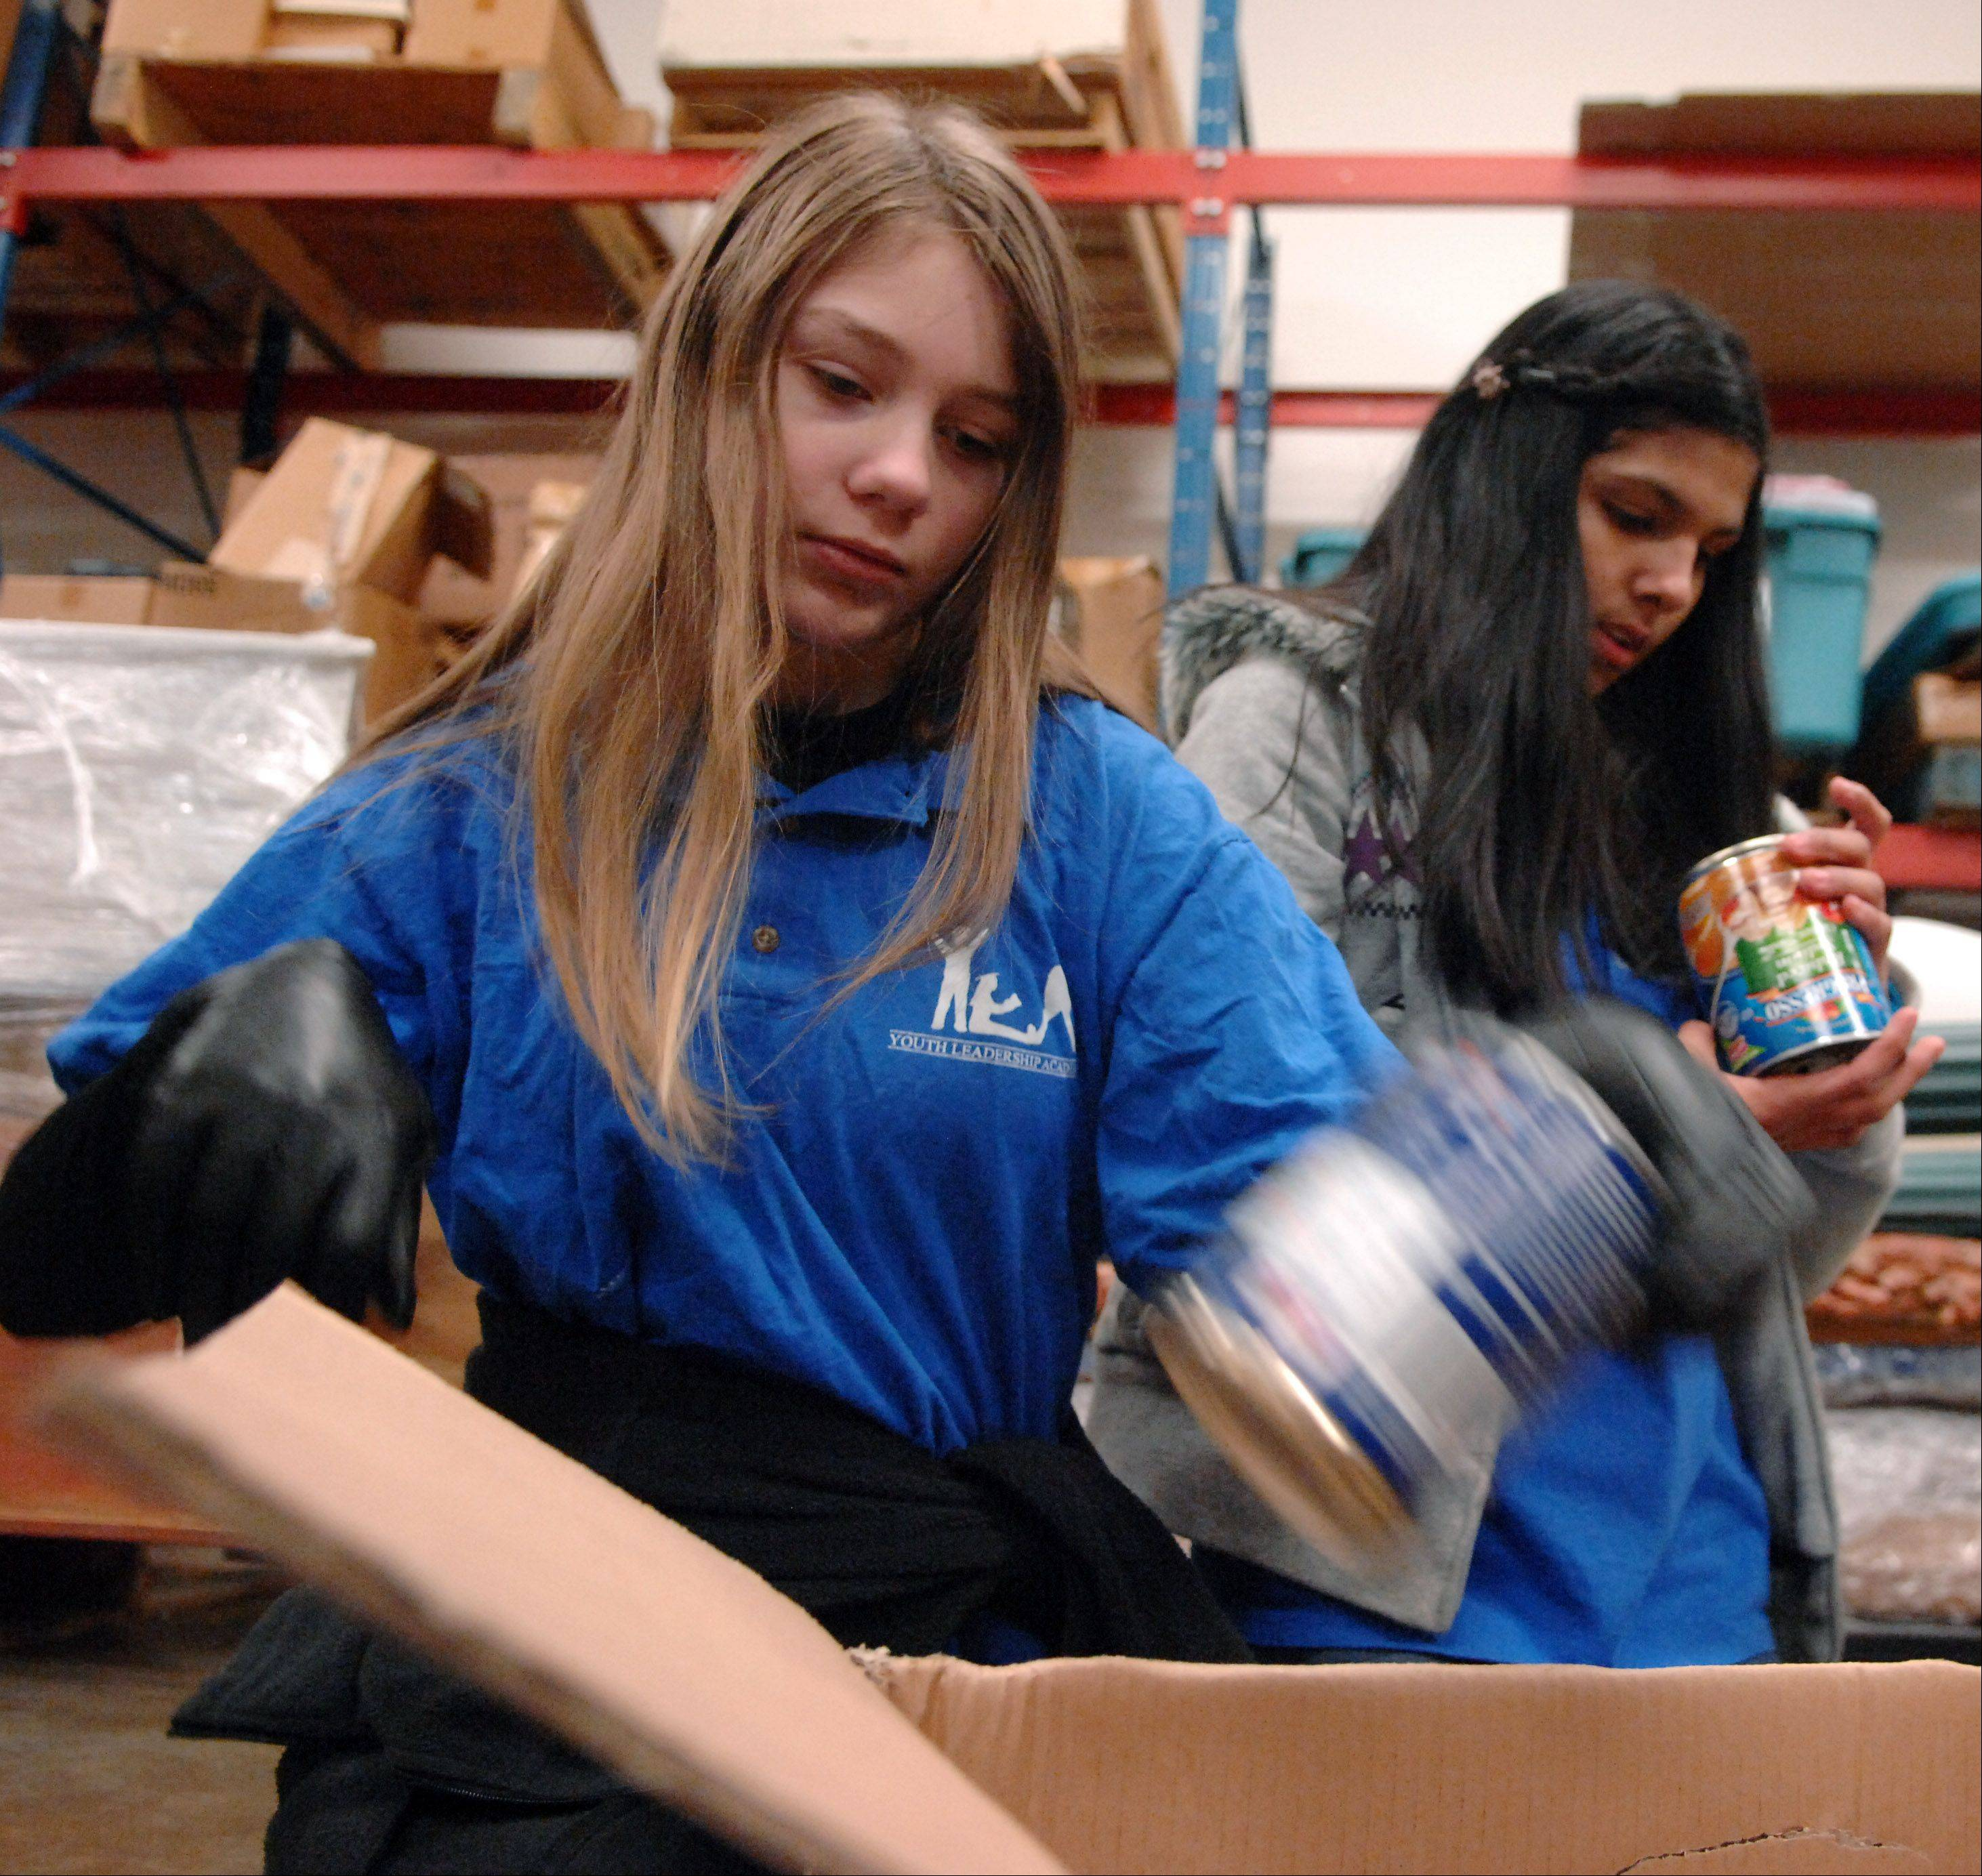 Dundee-Crown freshman Amanda Craig, left, and Carpentersville Middle School seventh grade student Elsie Guerra check process donations at the Church of the Brethren in Elgin Monday. Members of the Elgin Youth Leadership Academy collected and sorted food that was to be delivered to six local food pantries.